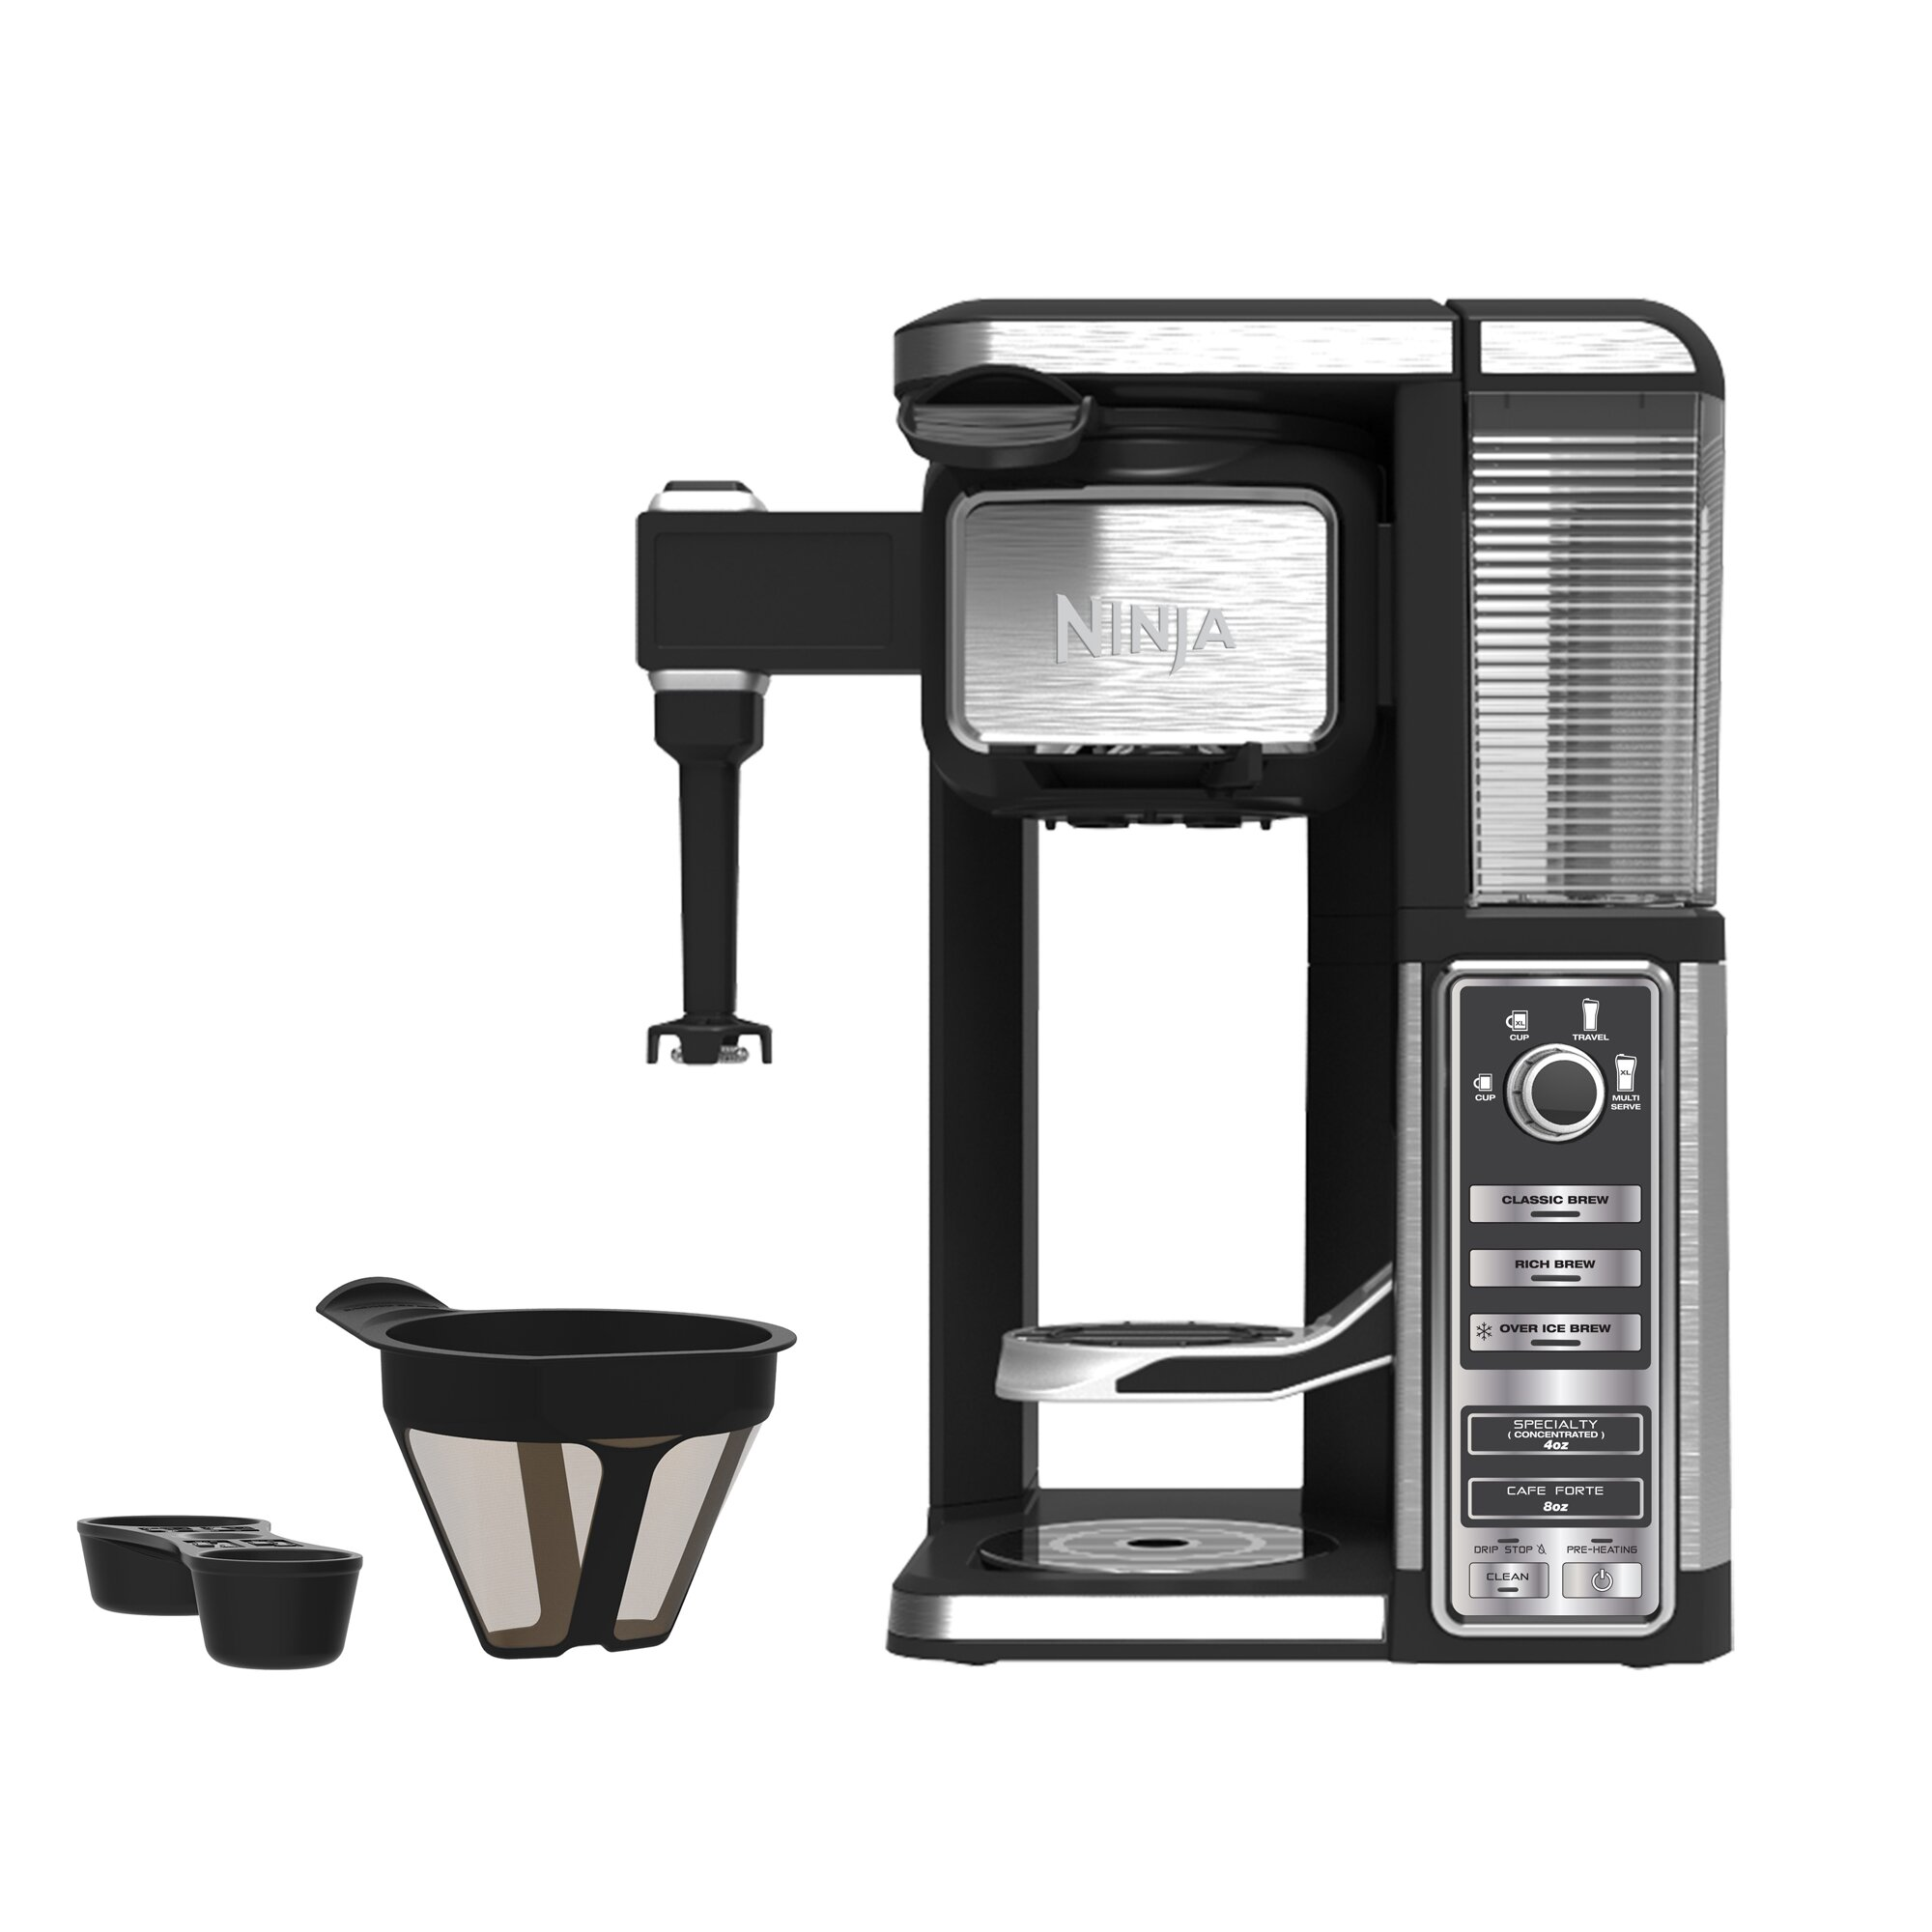 Ninja coffee maker reviews wayfair for Apartment size coffee maker